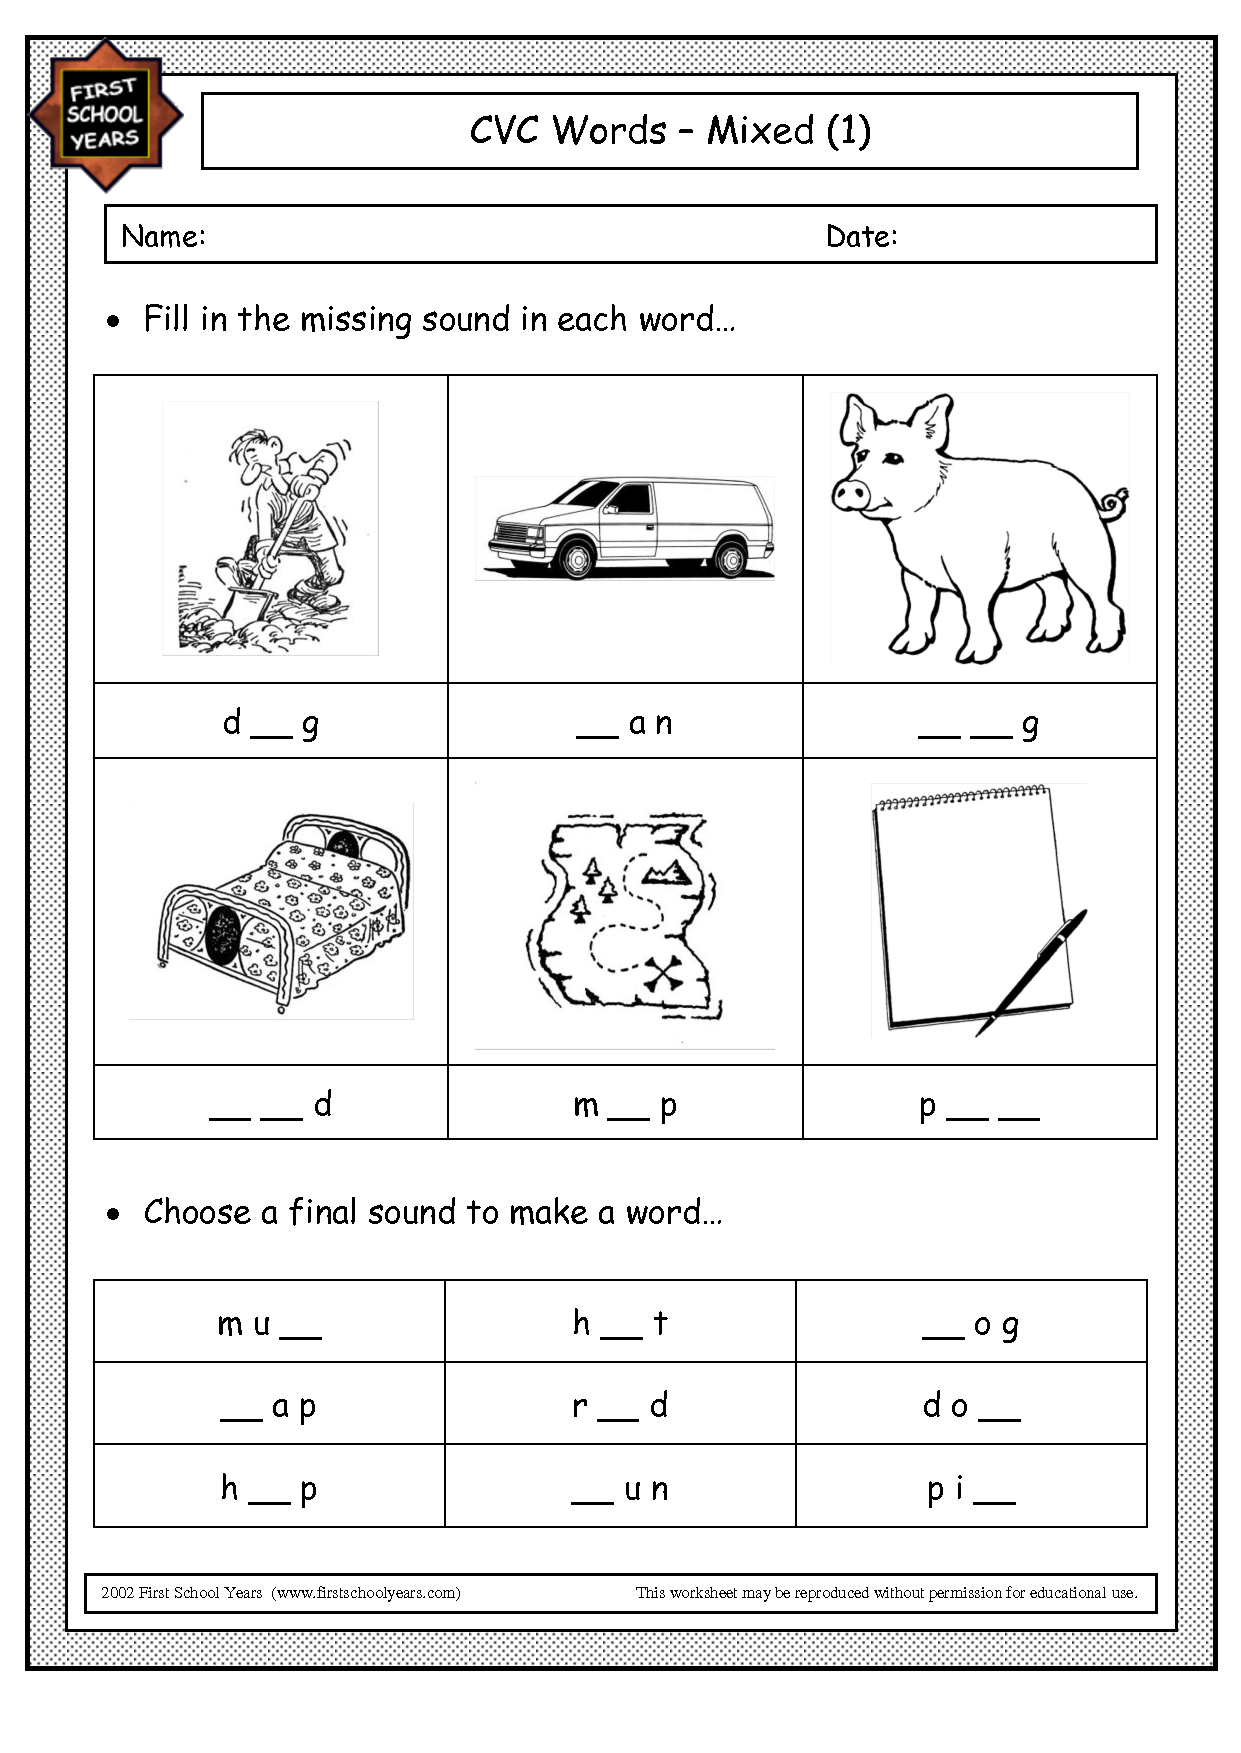 Cvc Worksheet Printable Pattern